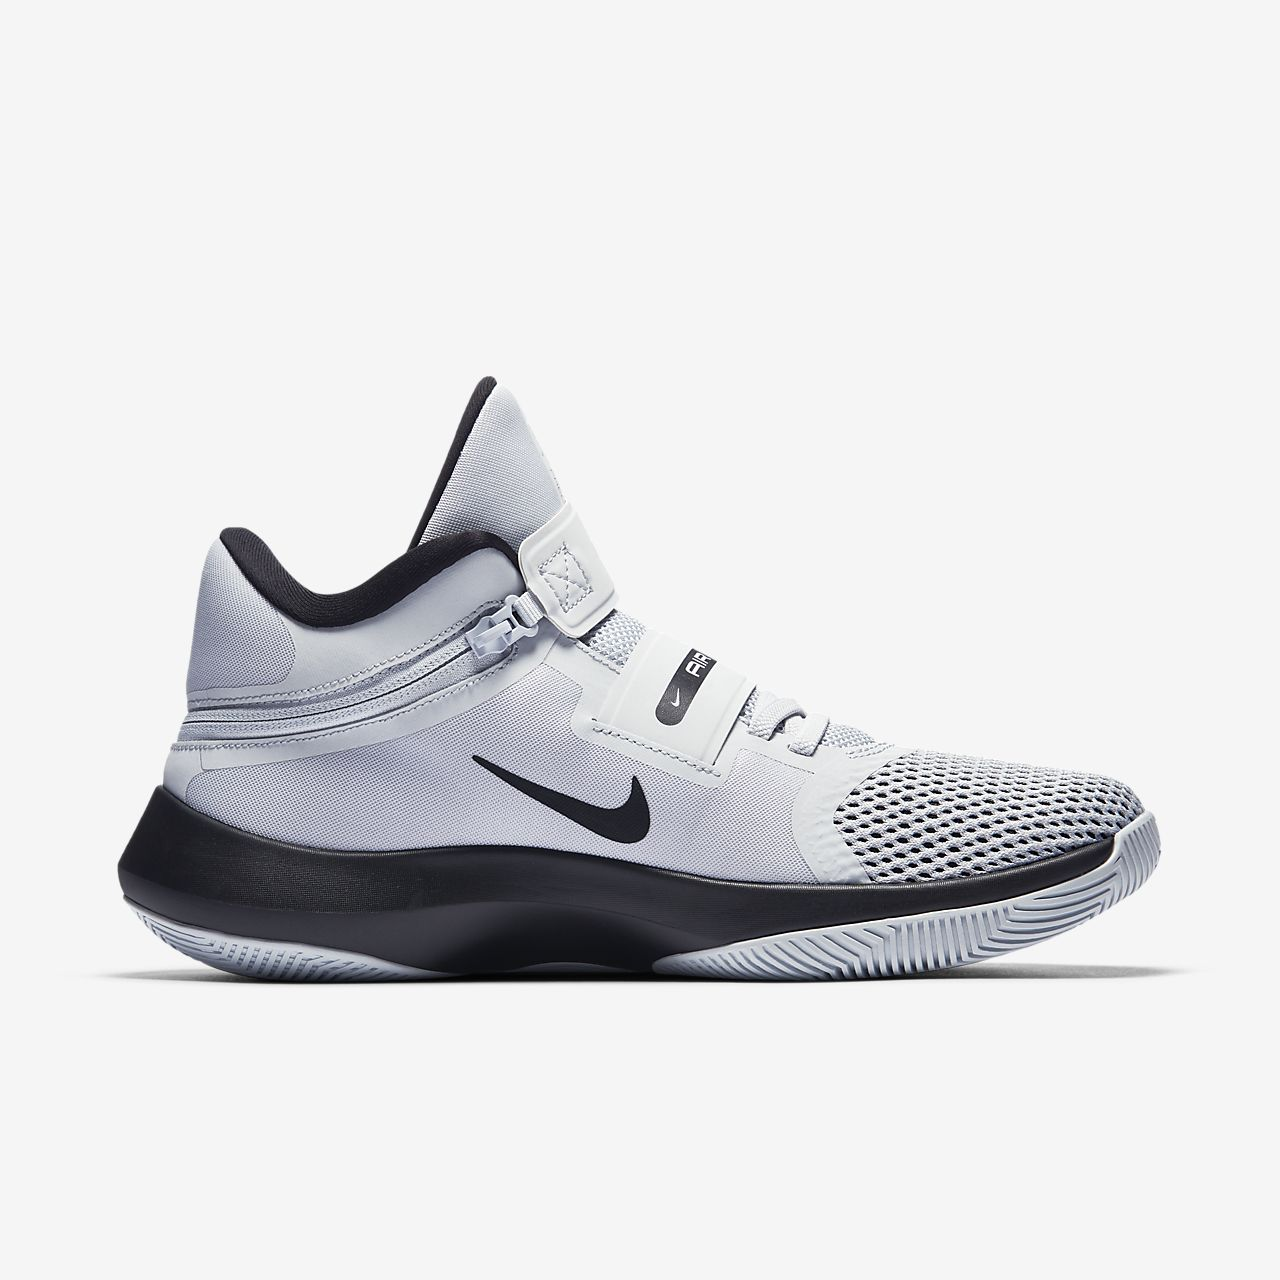 2 De Basketball Air Flyease Chaussure Pour Nike Precision Homme D29IYHWE